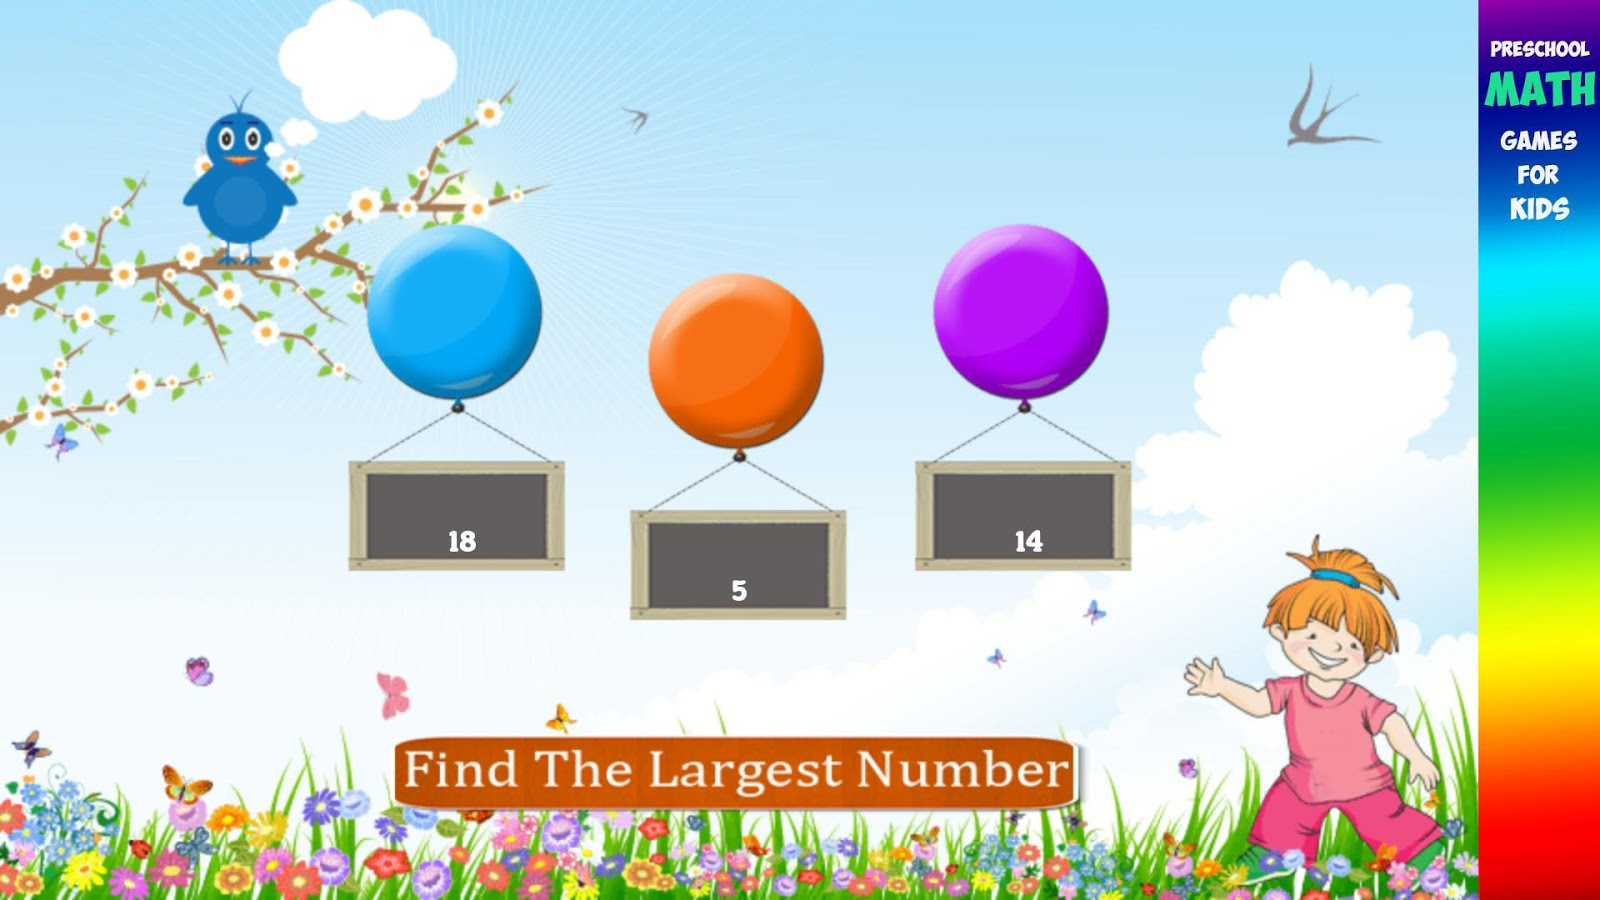 Preschool Math Games for Kids 2.3 APK Download - Android Education Apps